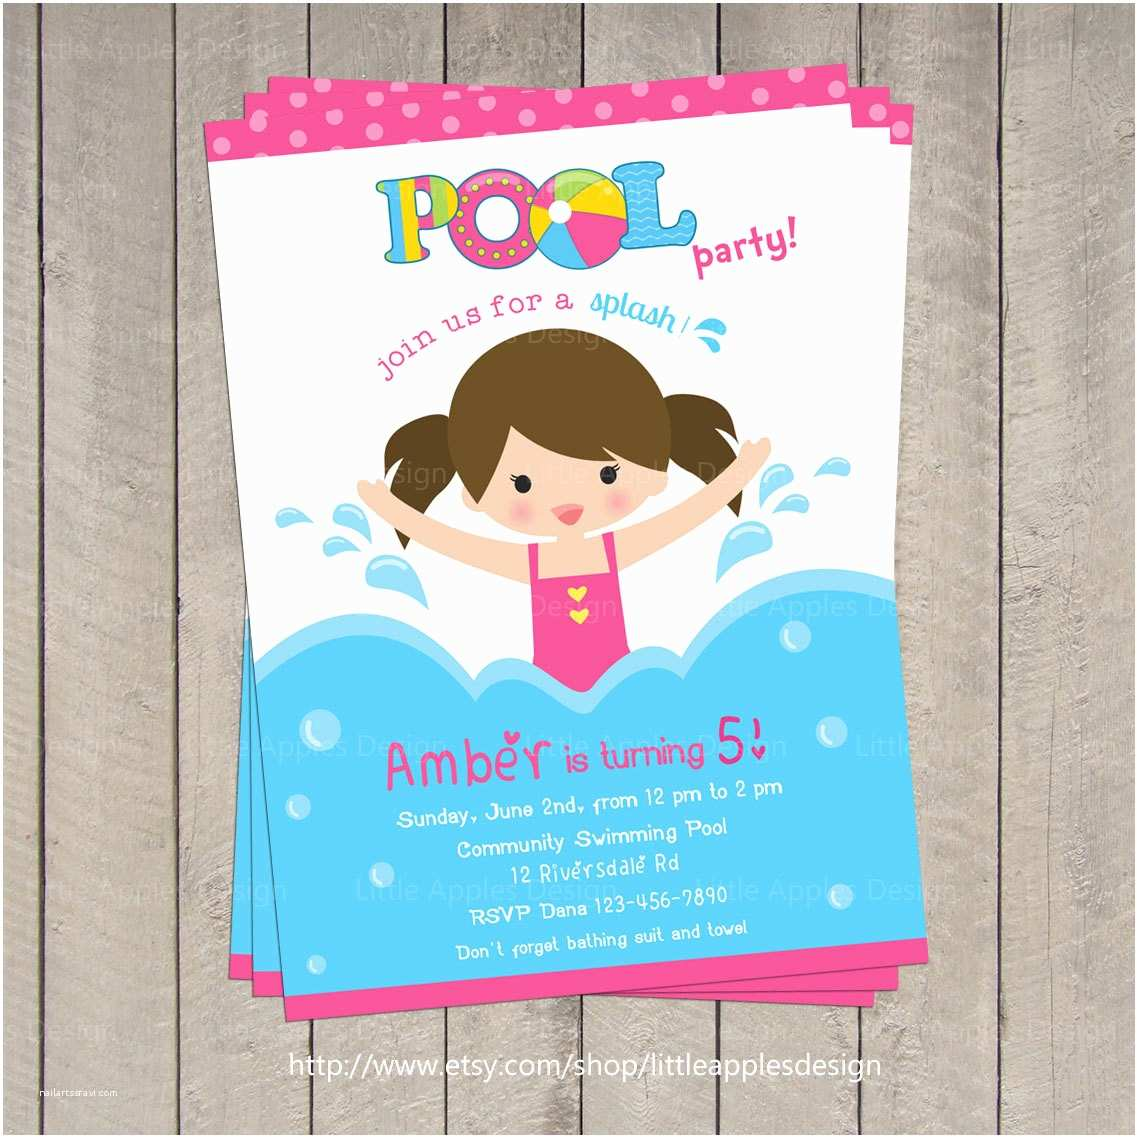 Pool Party Birthday Invitations Pool Invitation Pool Party Invitation Kids Pool Party